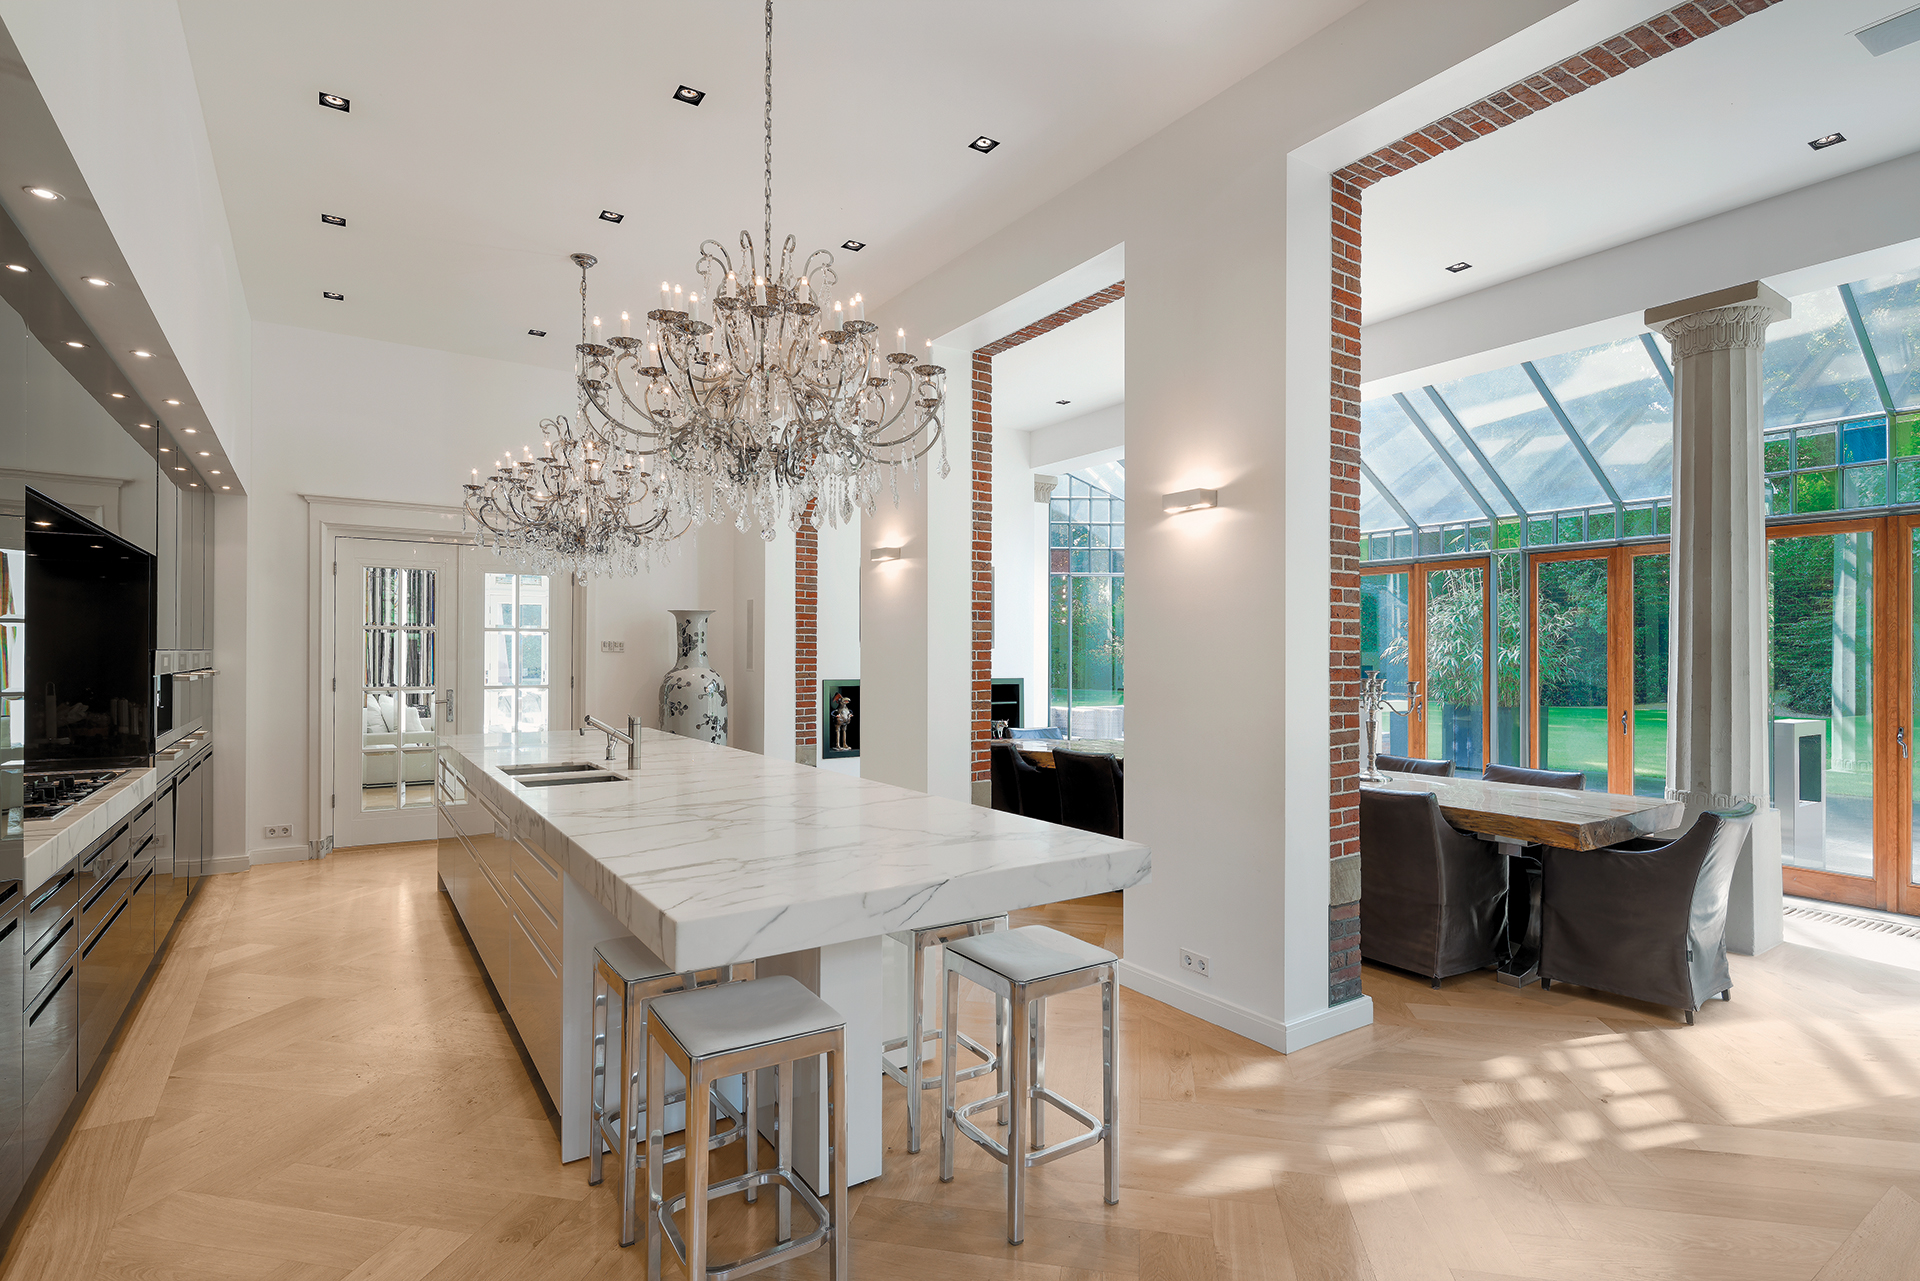 Kitchen island with dining foyer in the back